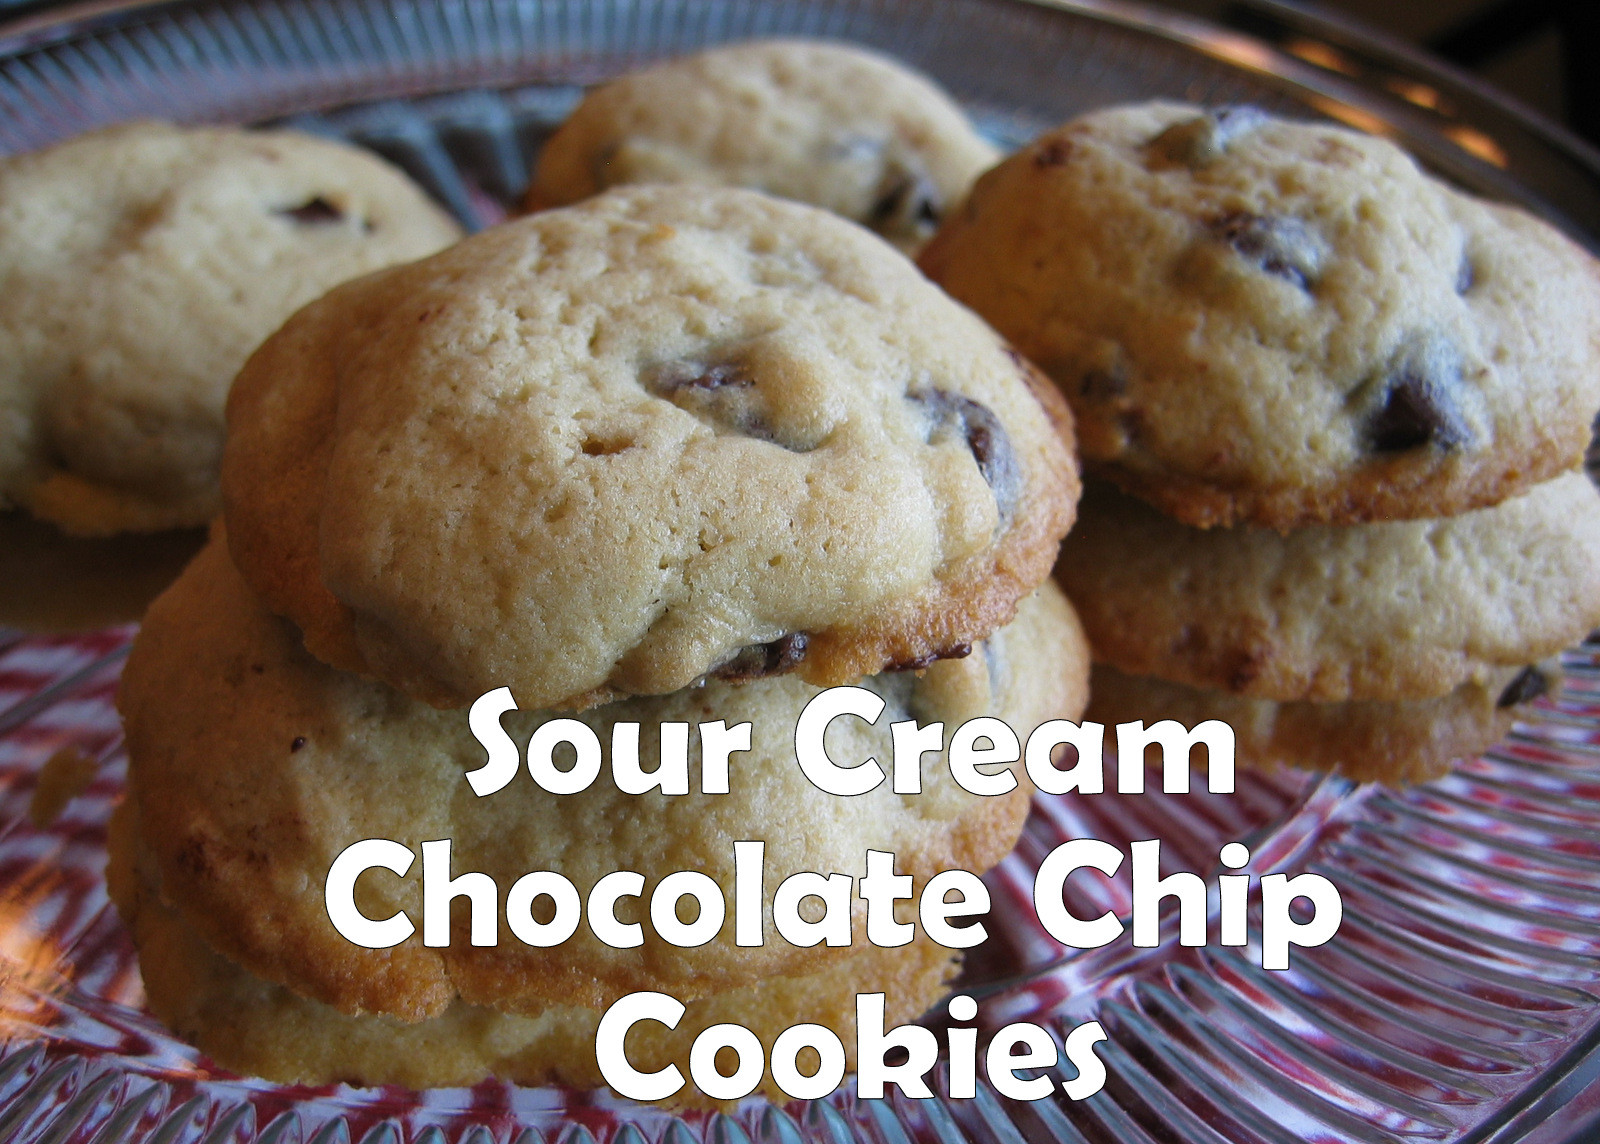 Sour Cream Chocolate Chip Cookies  Pink Cookies with Sprinkles Sour Cream Chocolate Chip